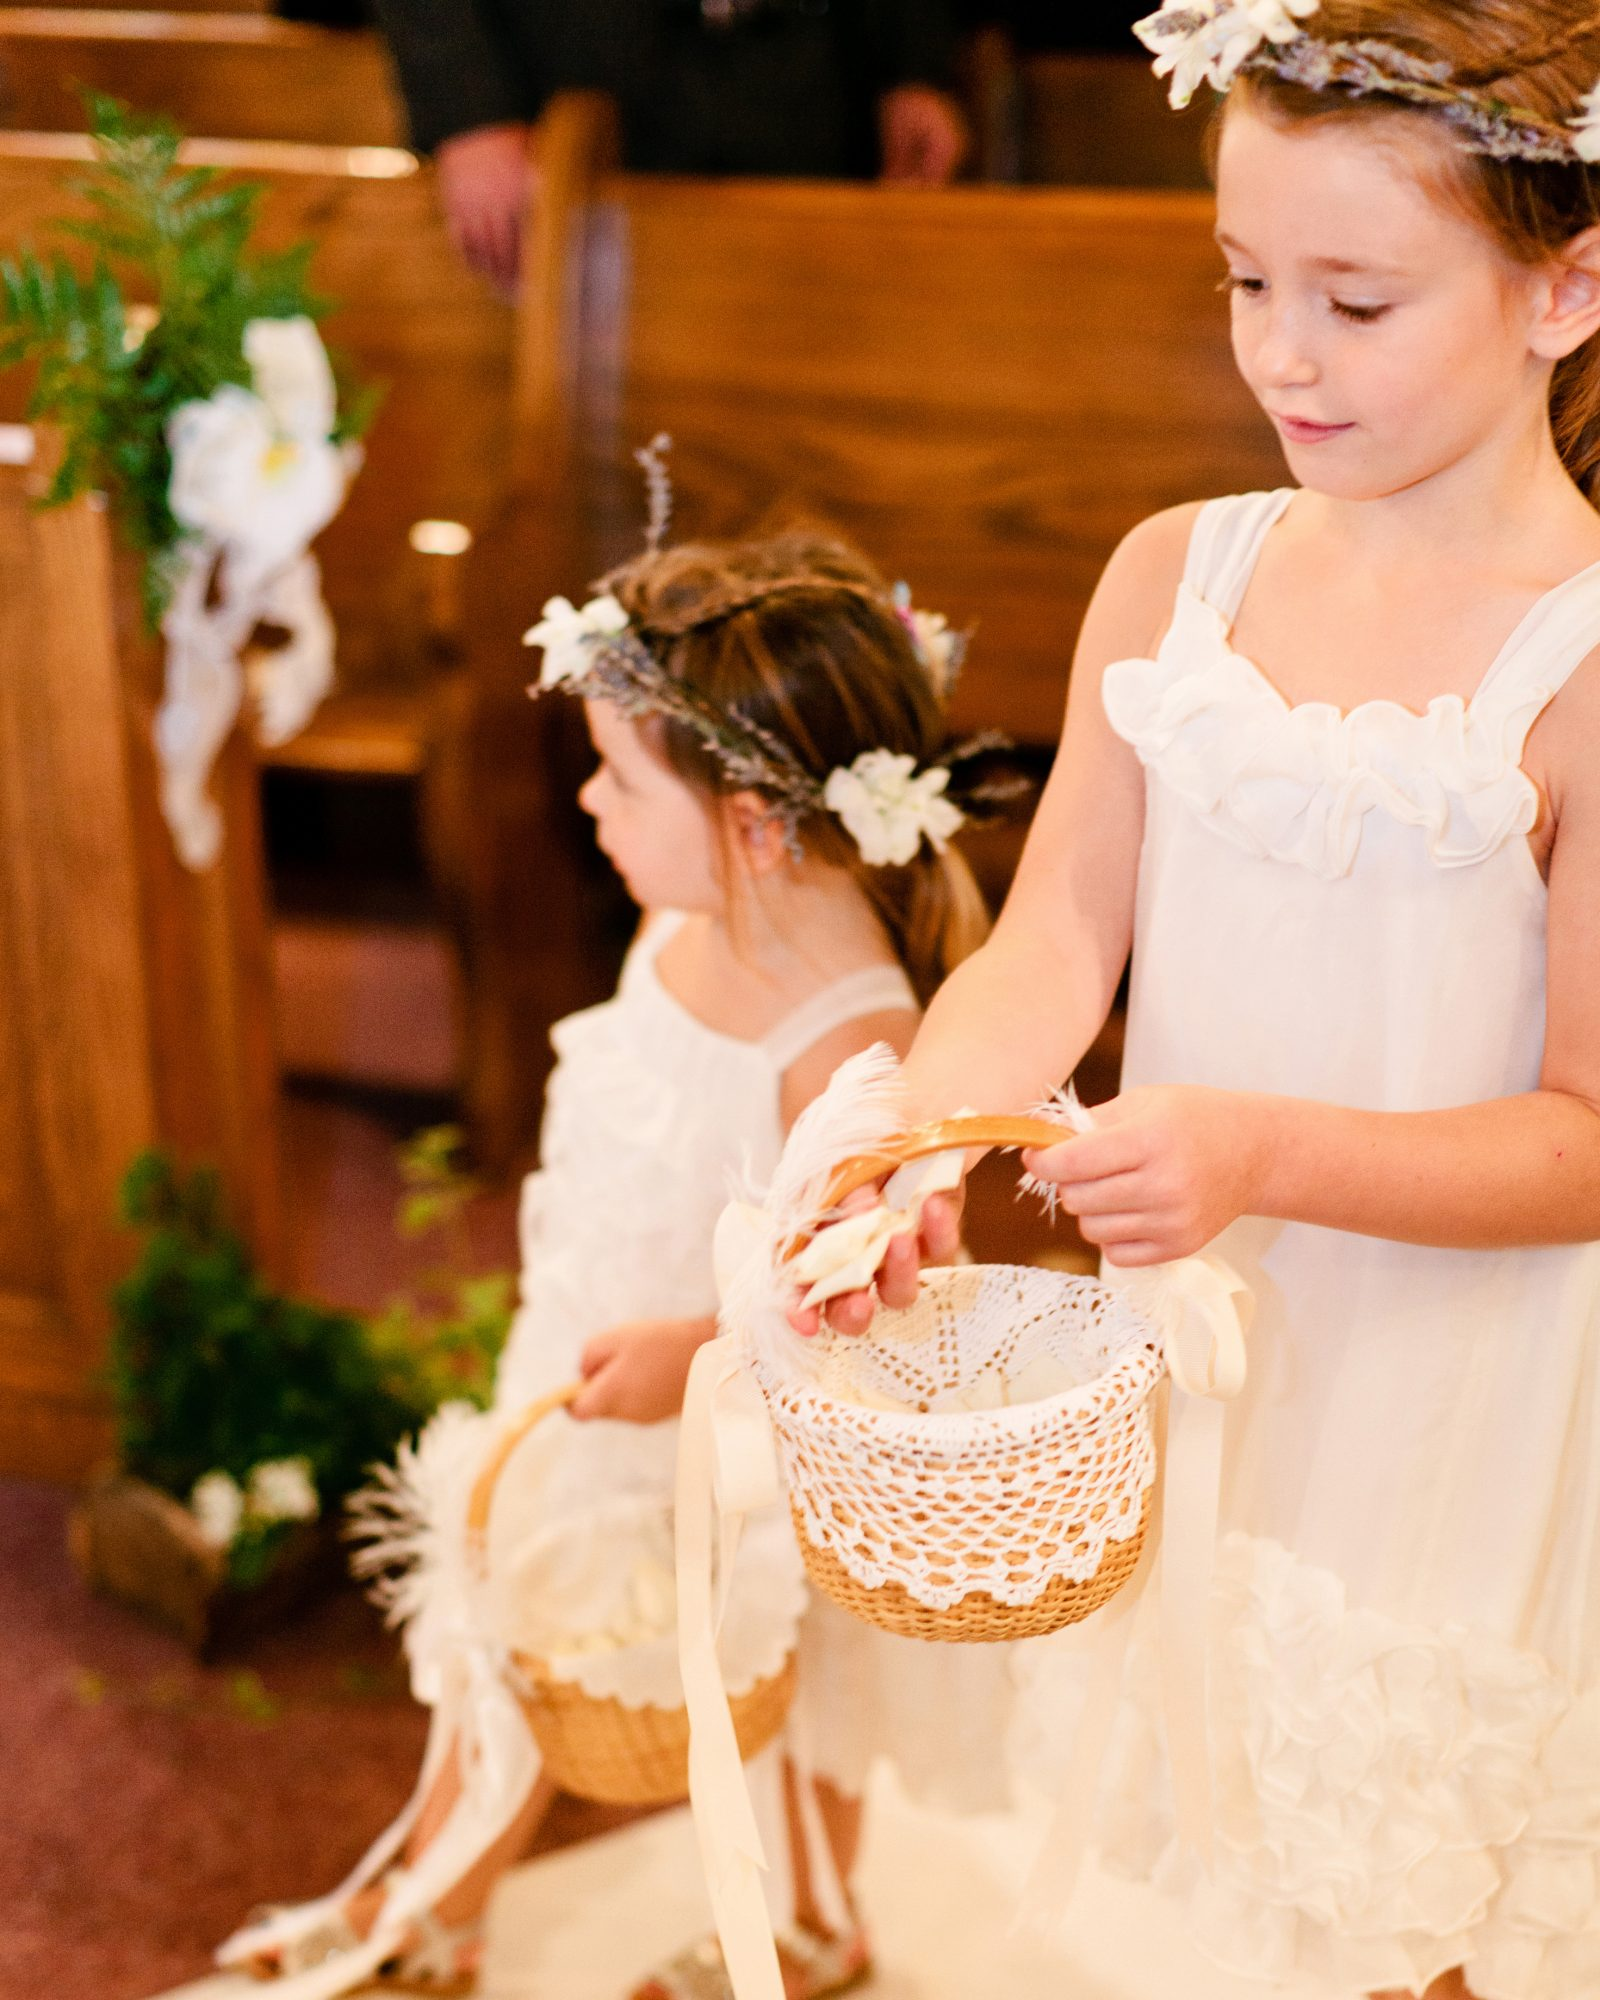 jola-tom-wedding-flowergirls-0614.jpg